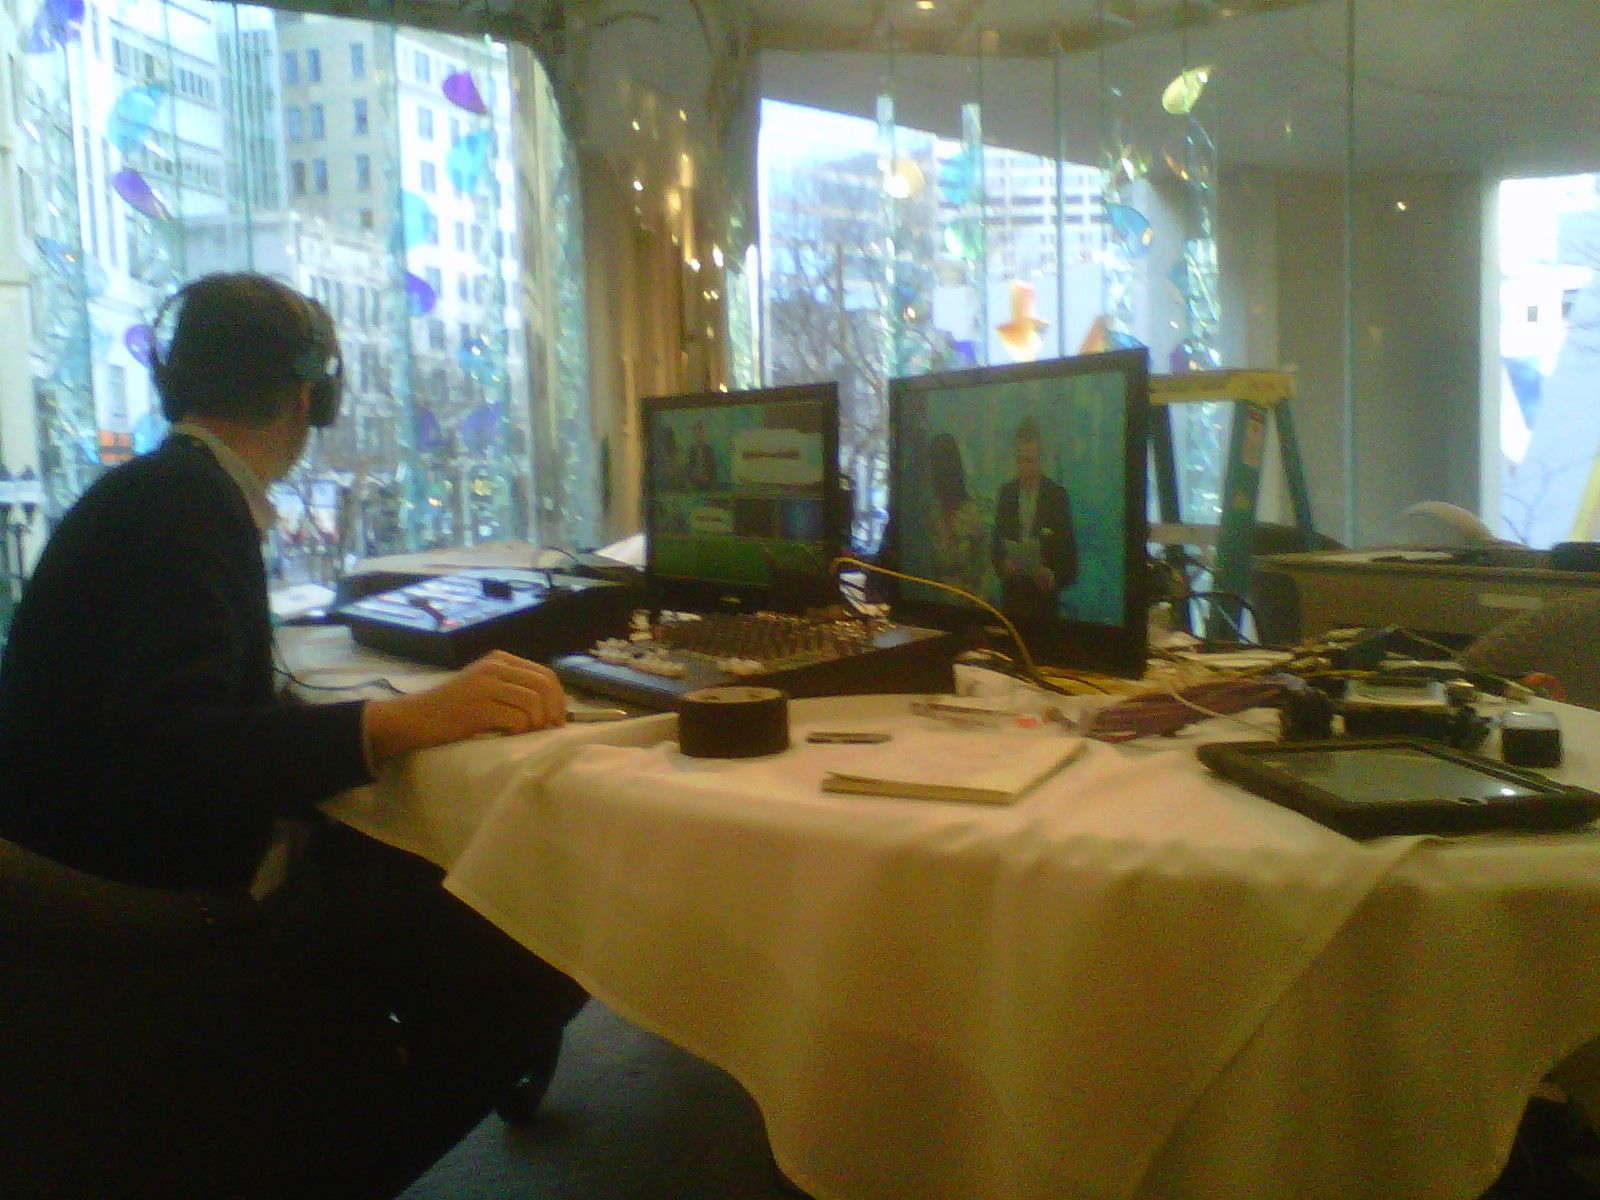 Working the Super Bowl in Broadcasting-img00496-20120130-1627.jpg